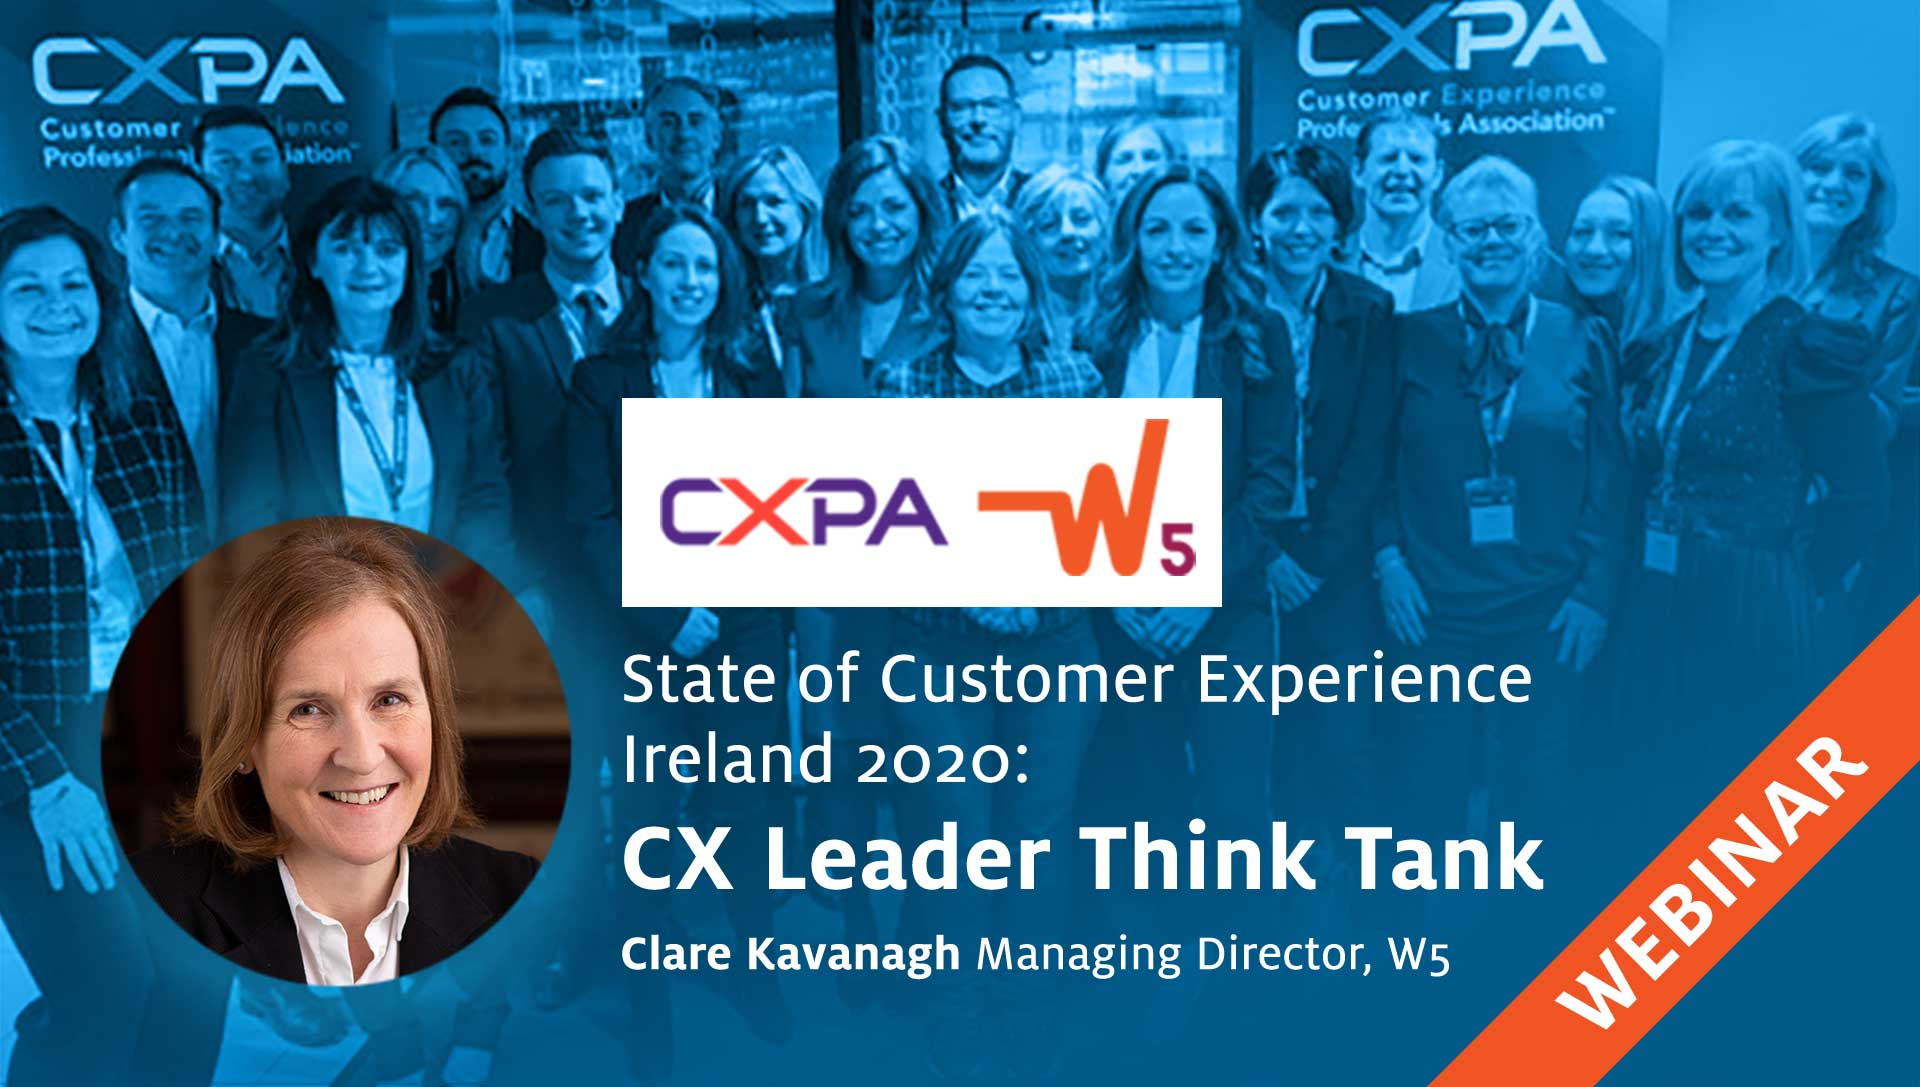 State-of-Customer-Experience-Ireland-2020-CX-Leader-Think-Tank